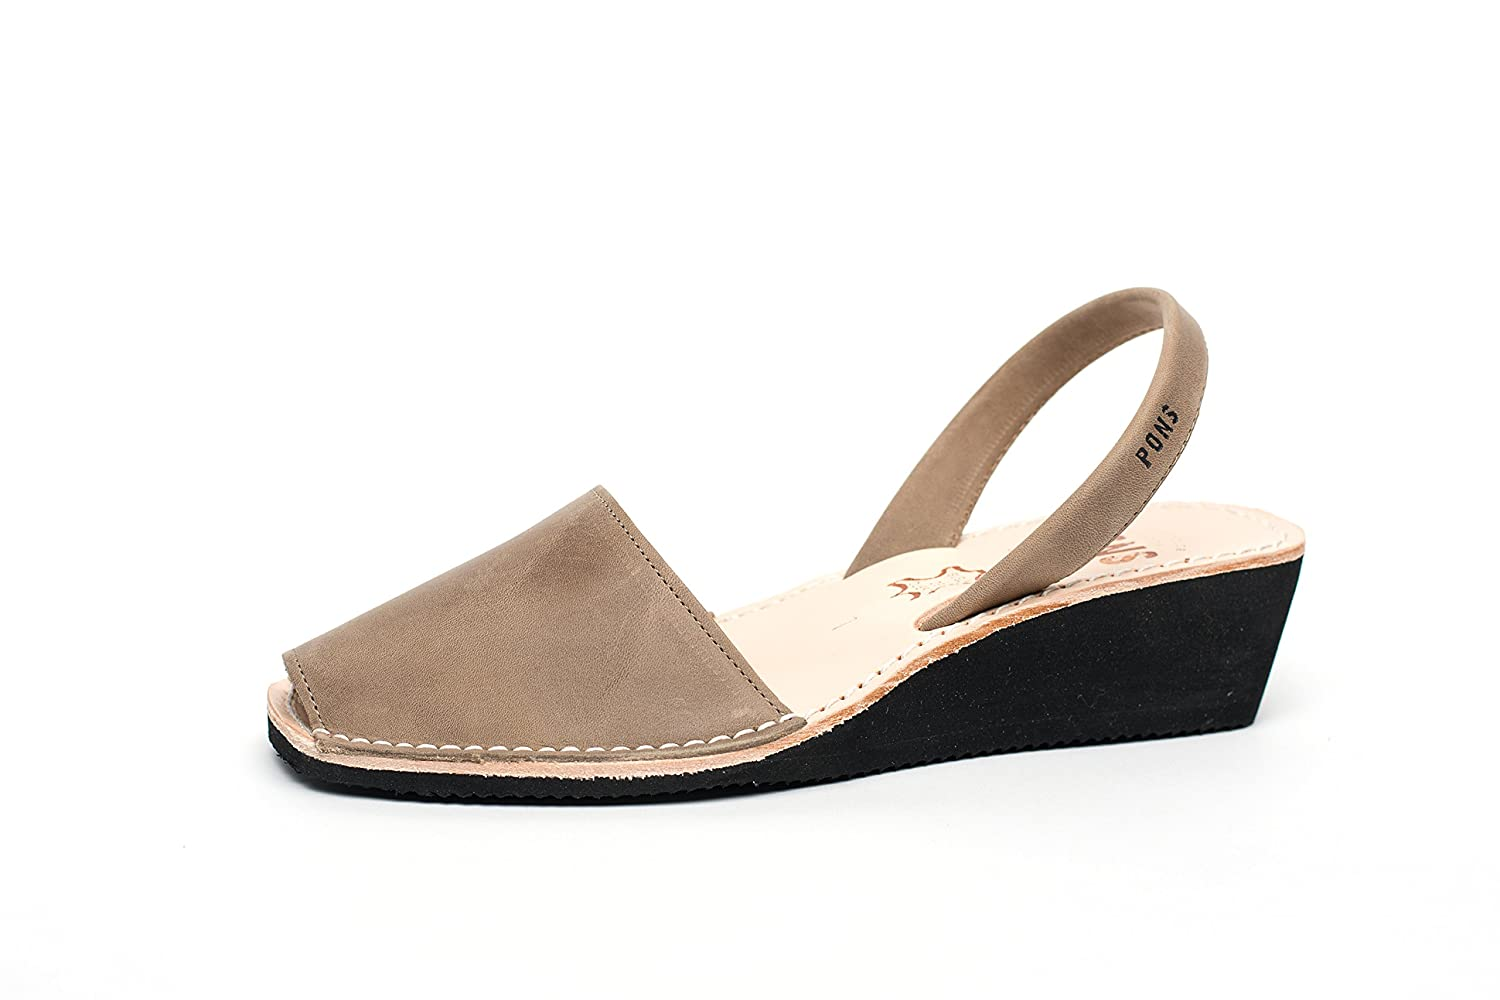 Taupe Pons 2021 - Avarca Wedge Taupe